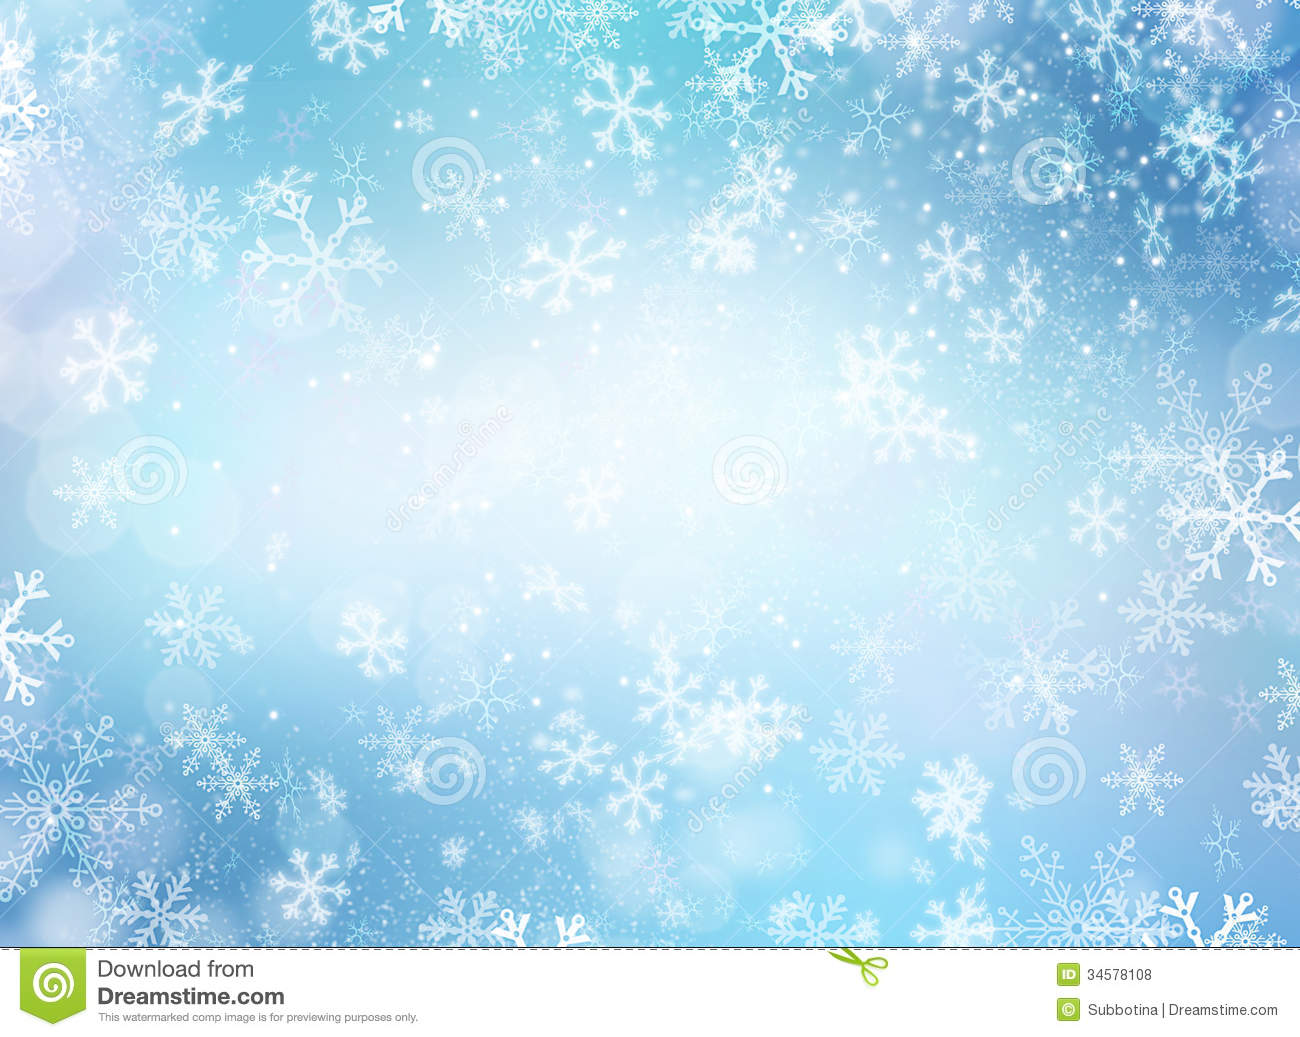 Snow Background Clipart & Snow Background Clip Art Images.